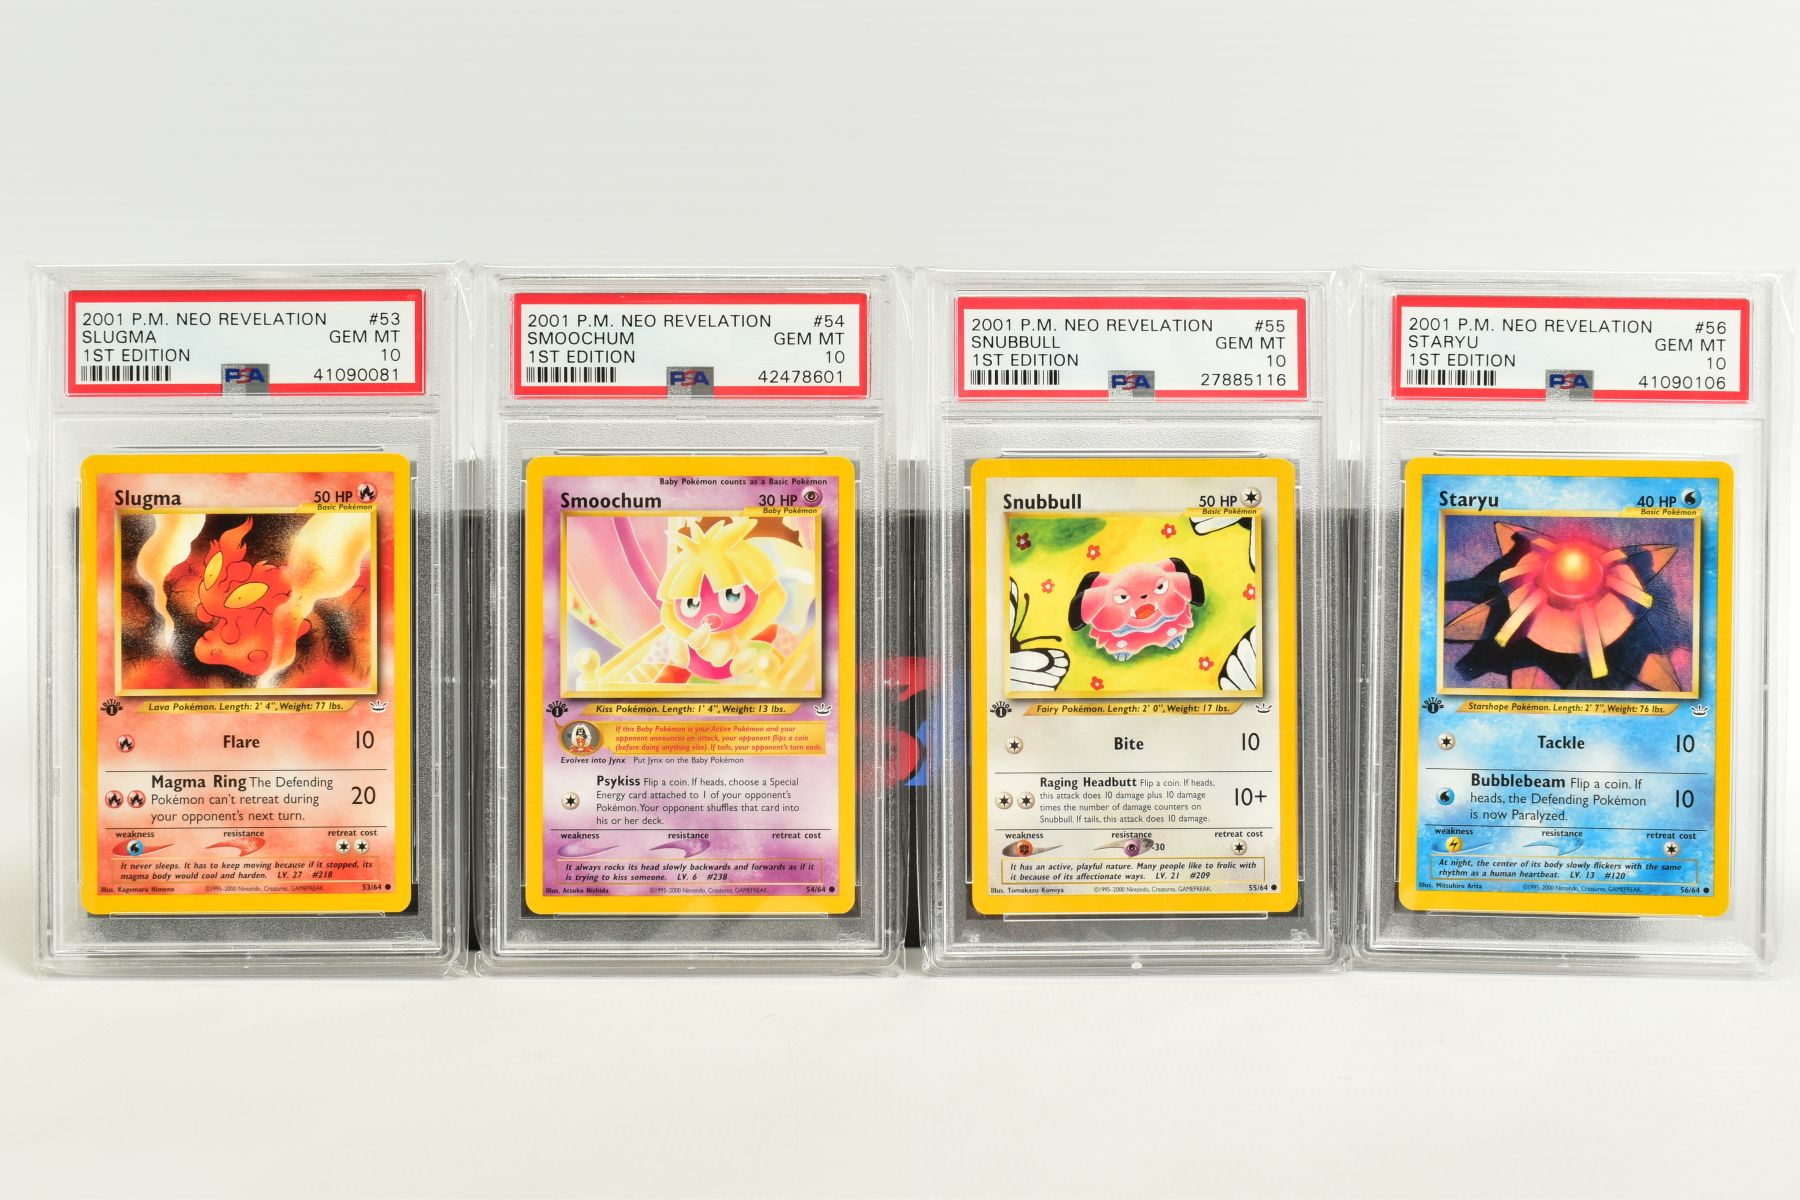 A QUANTITY OF PSA GRADED POKEMON 1ST EDITION NEO REVELATION SET CARDS, all are graded GEM MINT 10 - Image 12 of 14